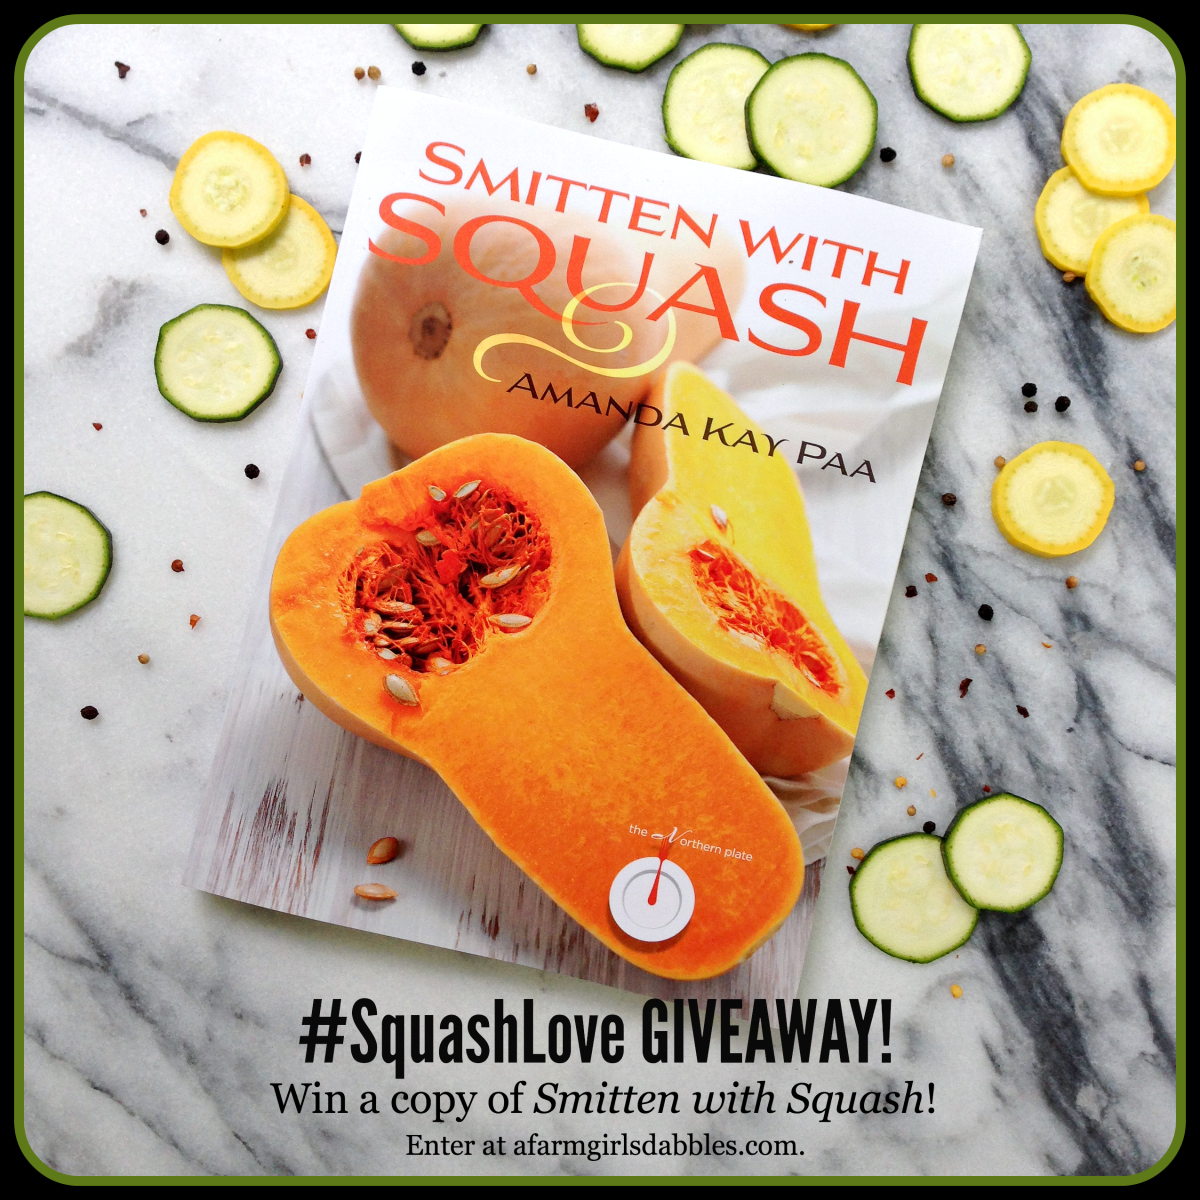 #SquashLove #Giveaway - win a copy of Smitten with Squash by Amanda Paa - enter at afarmgirlsdabbles.com